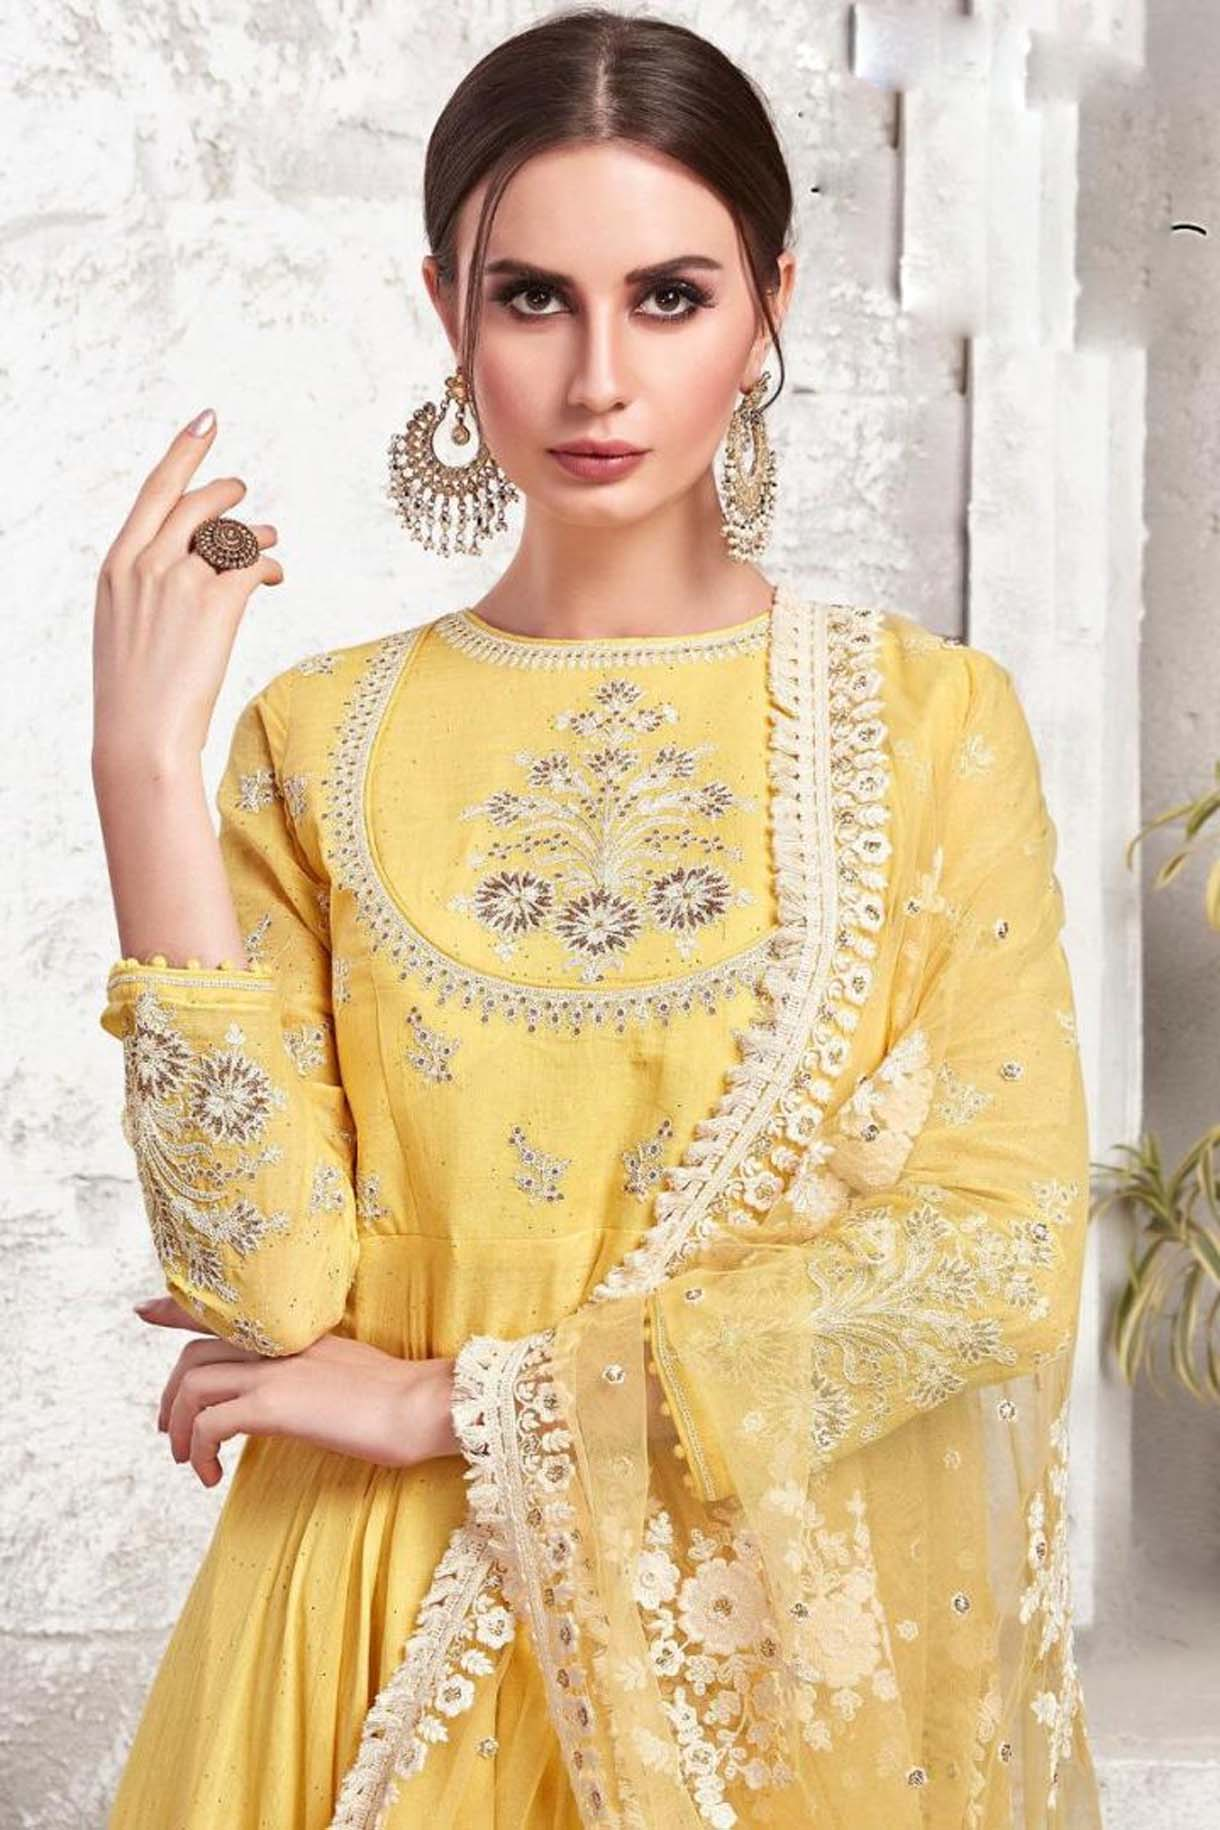 Cotton wedding Dress Plus Size in Yellow Colour for Haldi Function